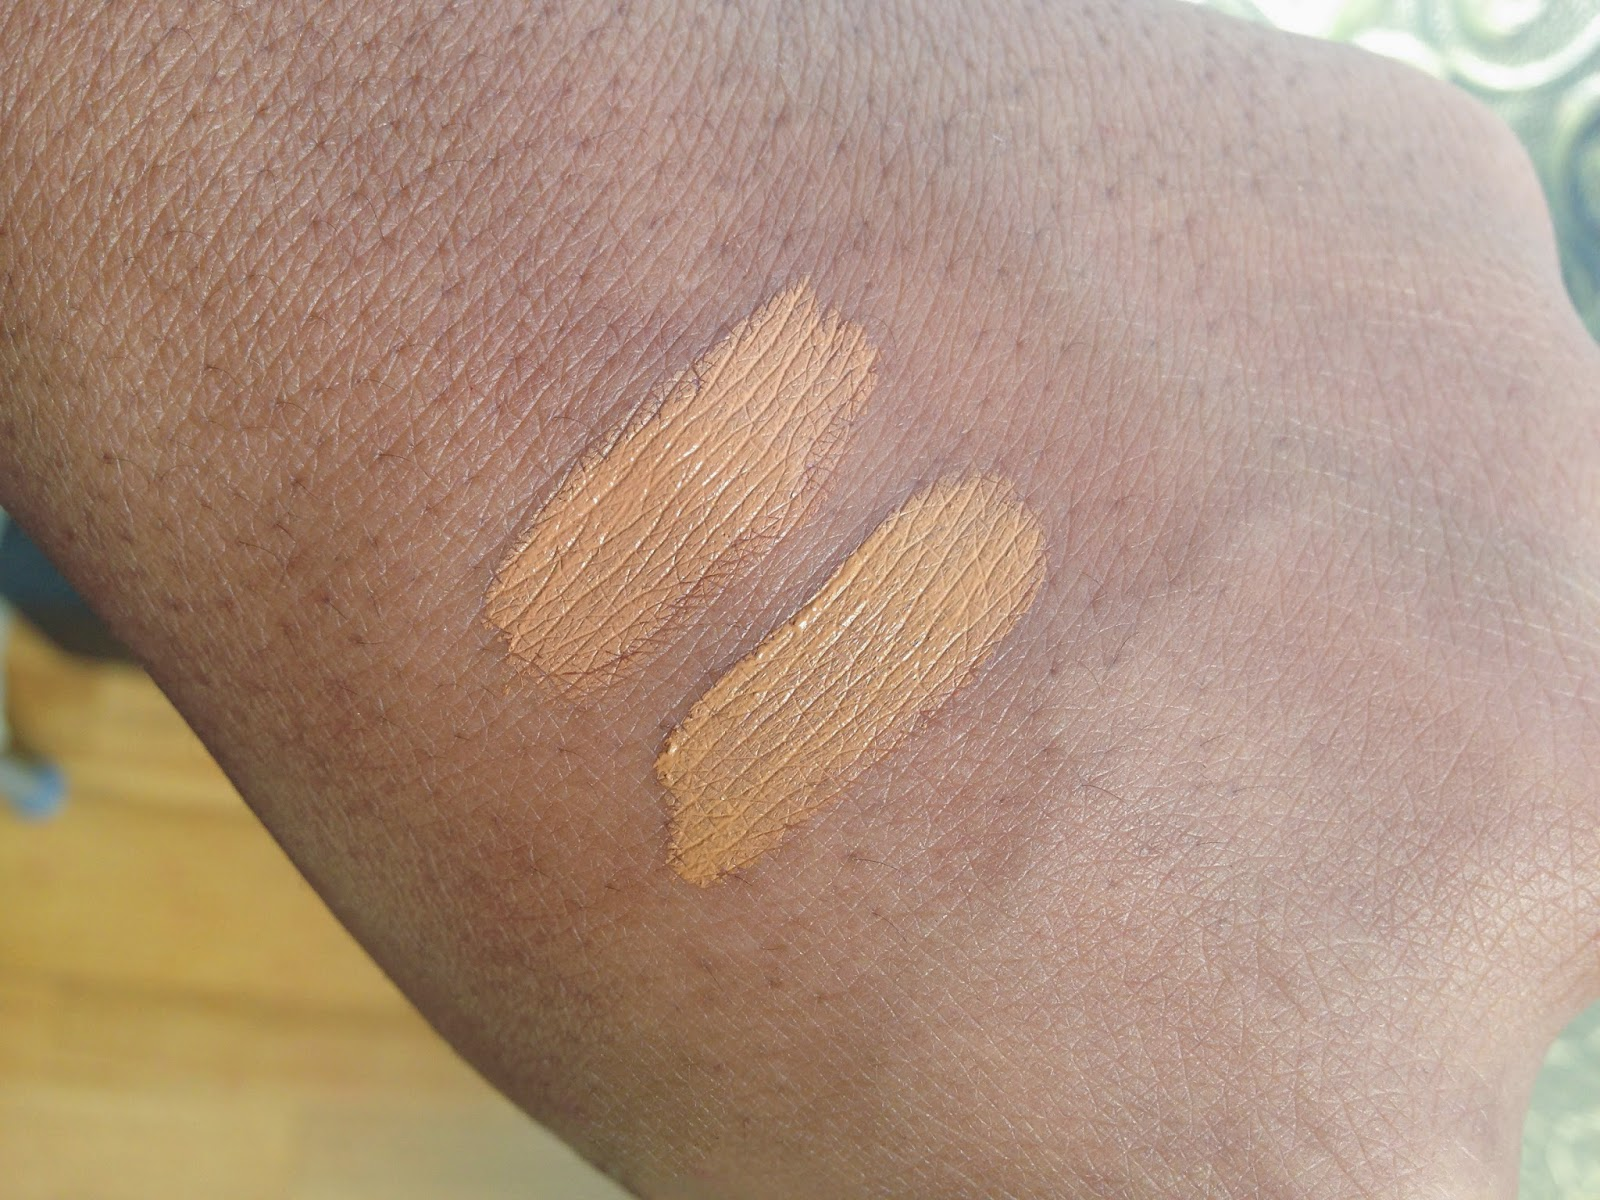 LA Girl Pro Conceal HD Concealers Fawn Toffee Swatches NC50 WoC Beauty Blogger London Discoveriesofself blog